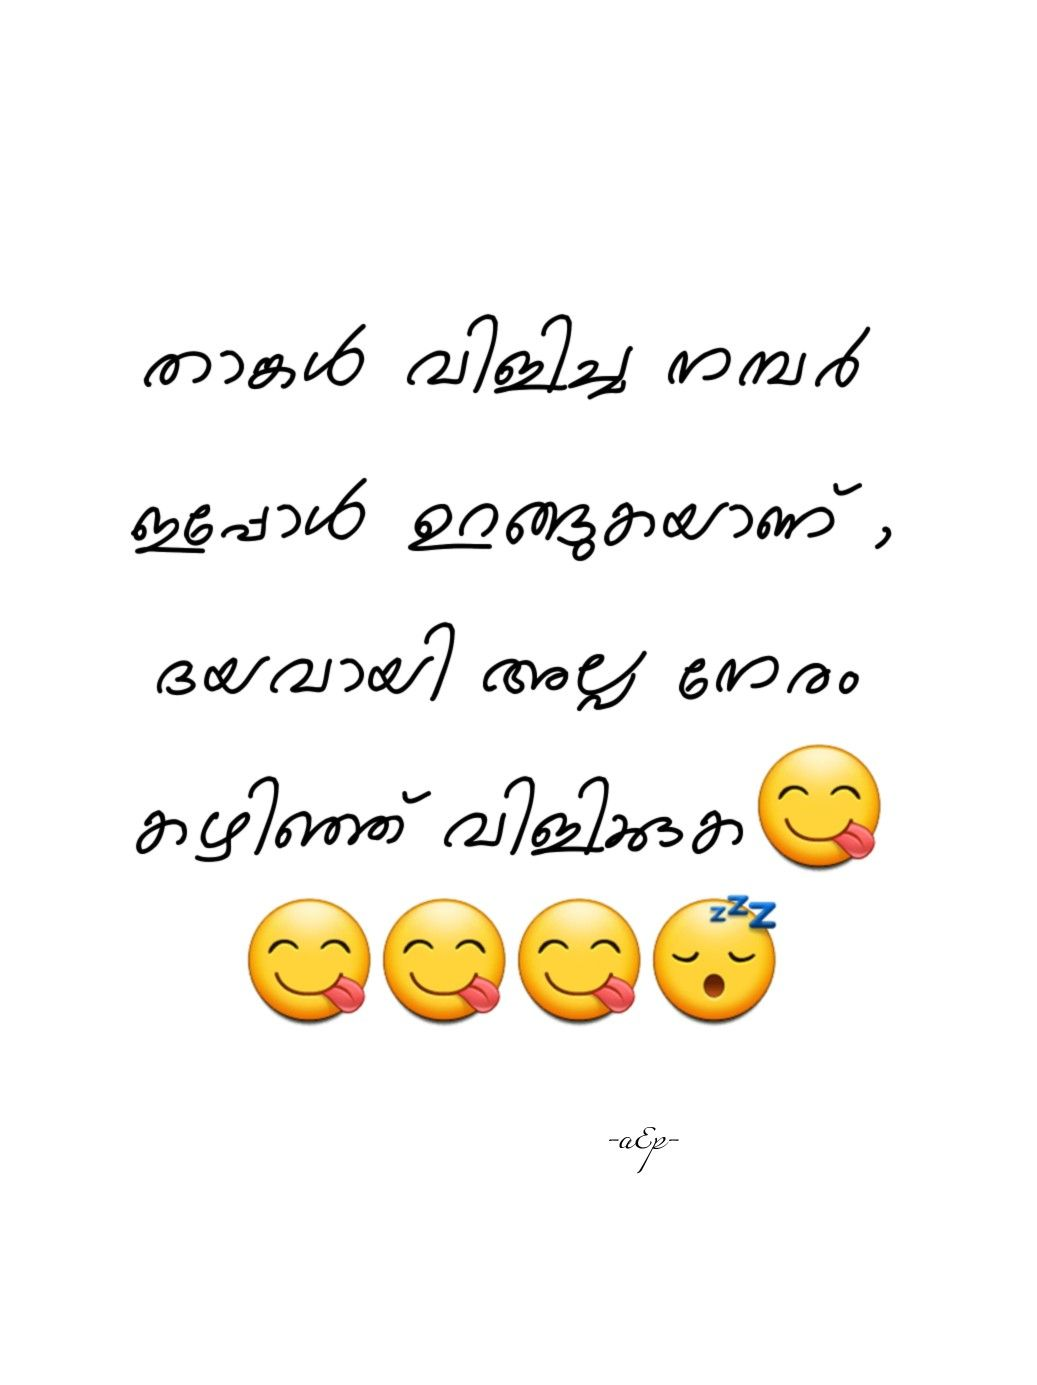 Malayalam Funny Quotes Funny Quotes Heartfelt Quotes Emotional Quotes